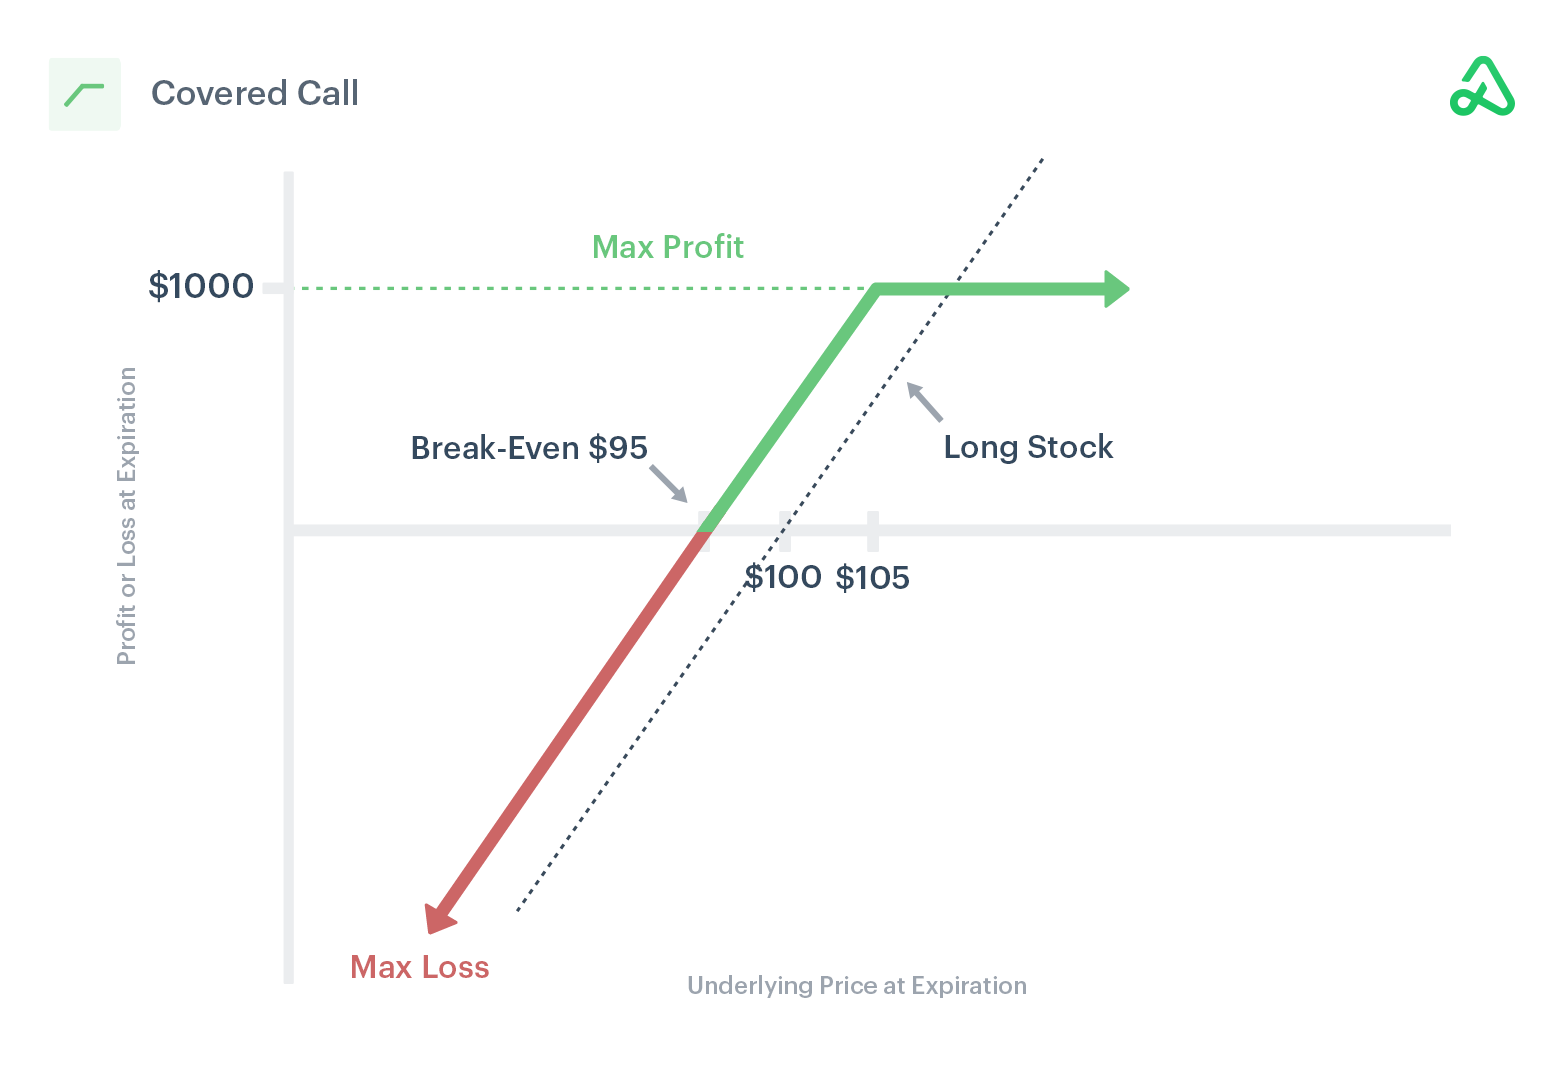 Image of a covered call payoff diagram showing max profit, max loss, and break-even points